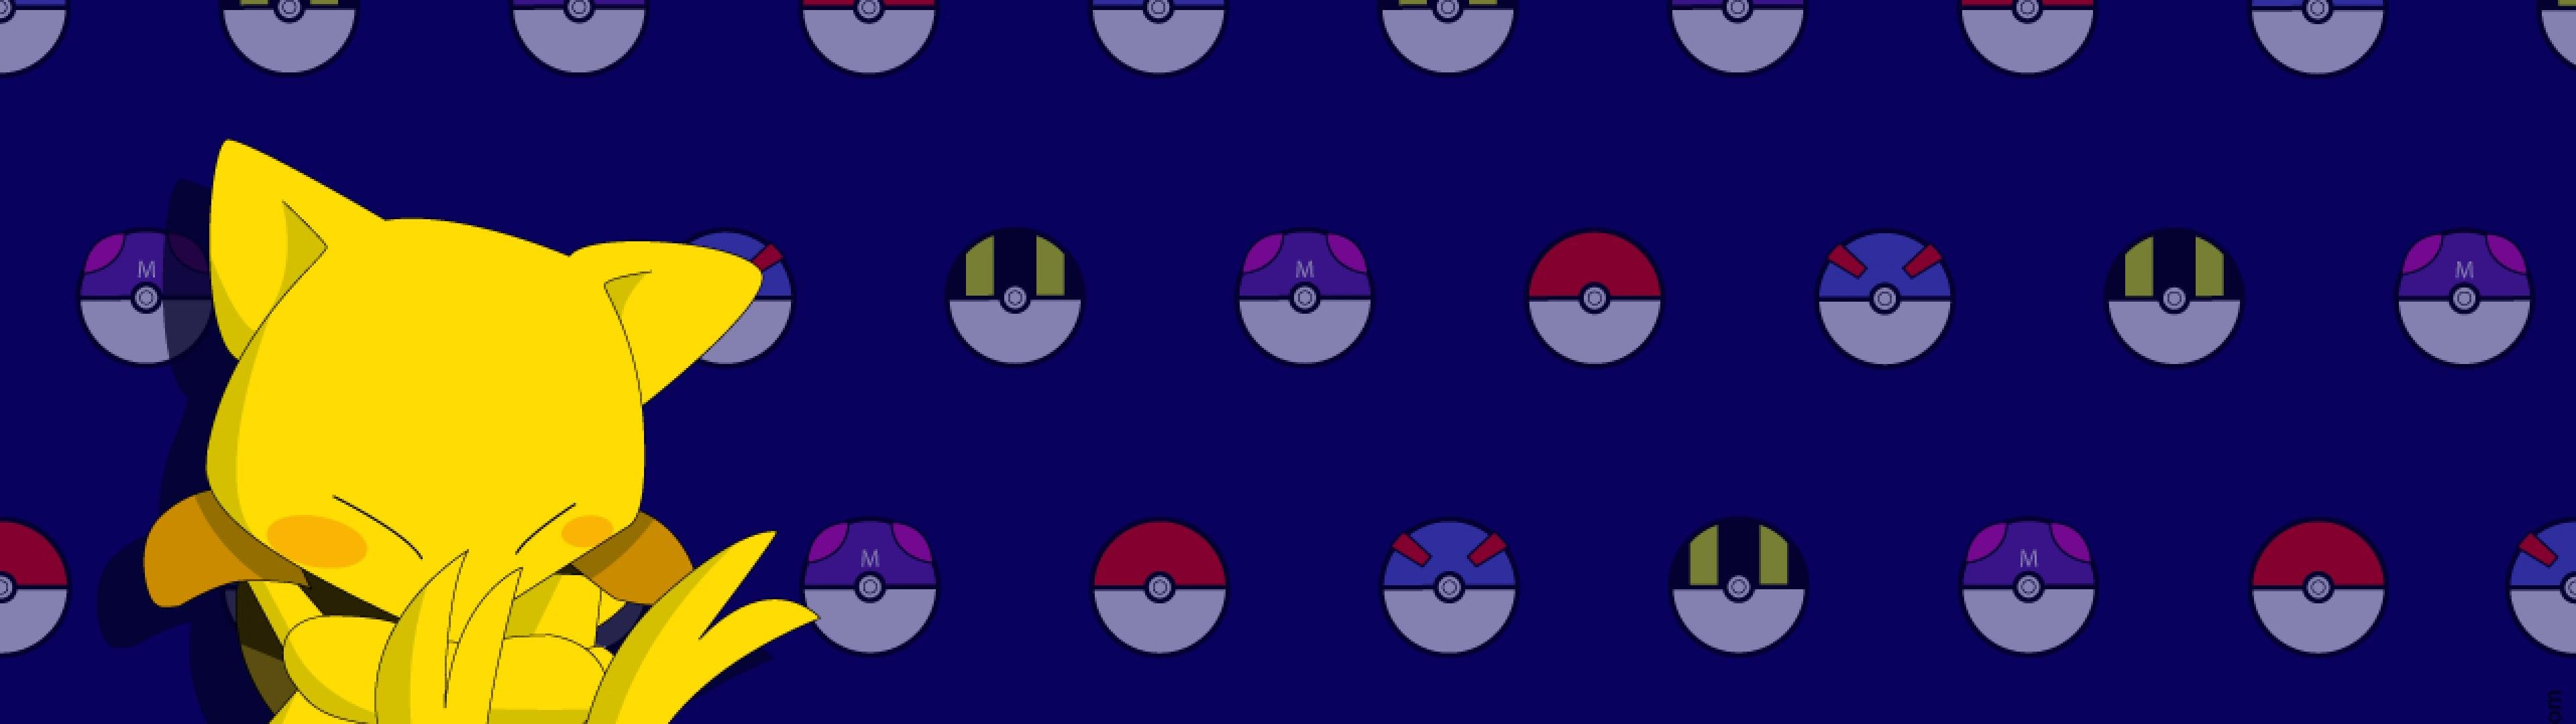 pokemon abra Q8l 3840x1080